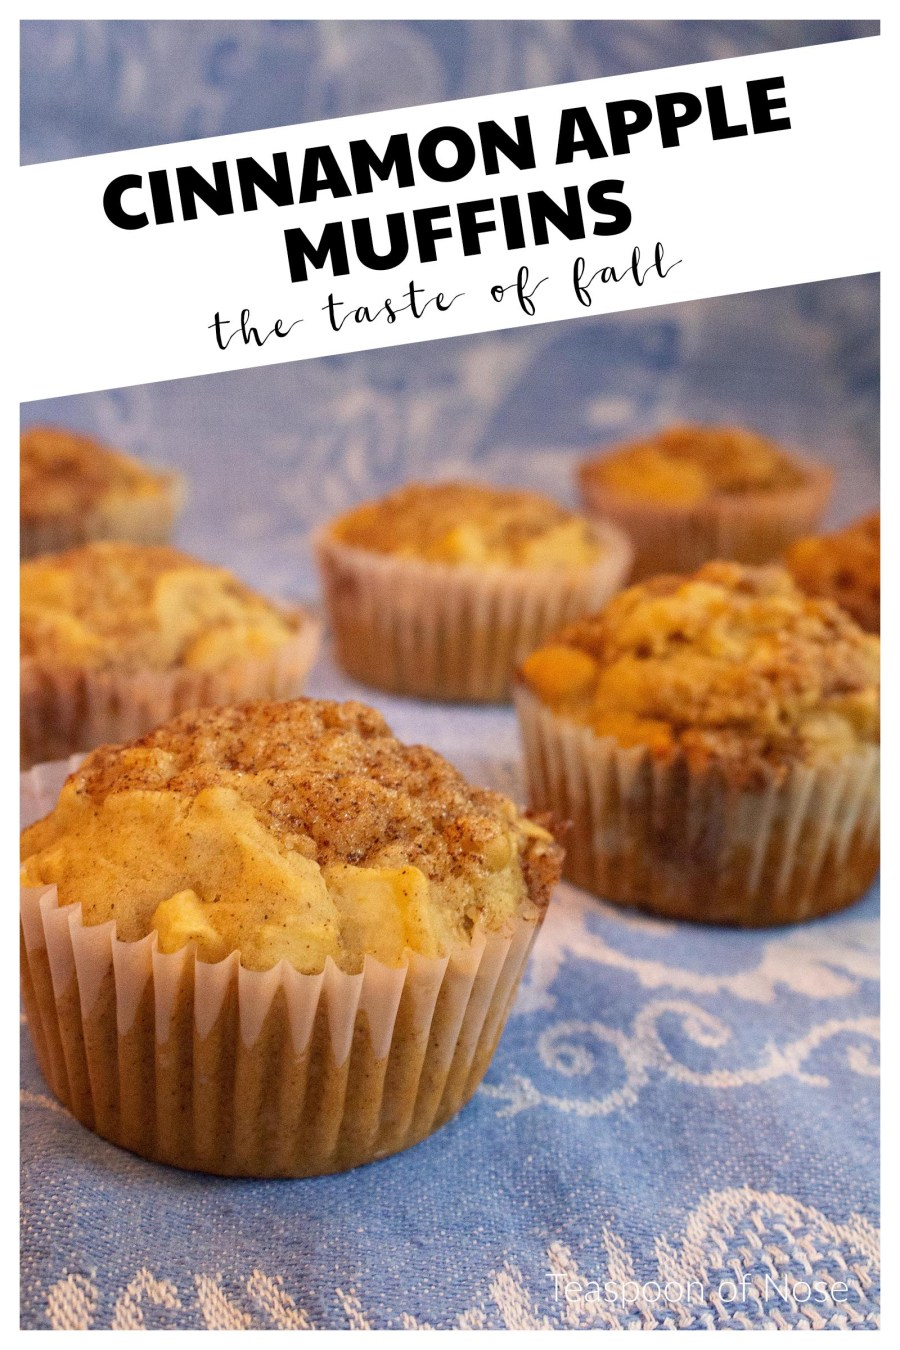 These cinnamon apple muffins make a great breakfast treat and are perfect for your next fall gathering!